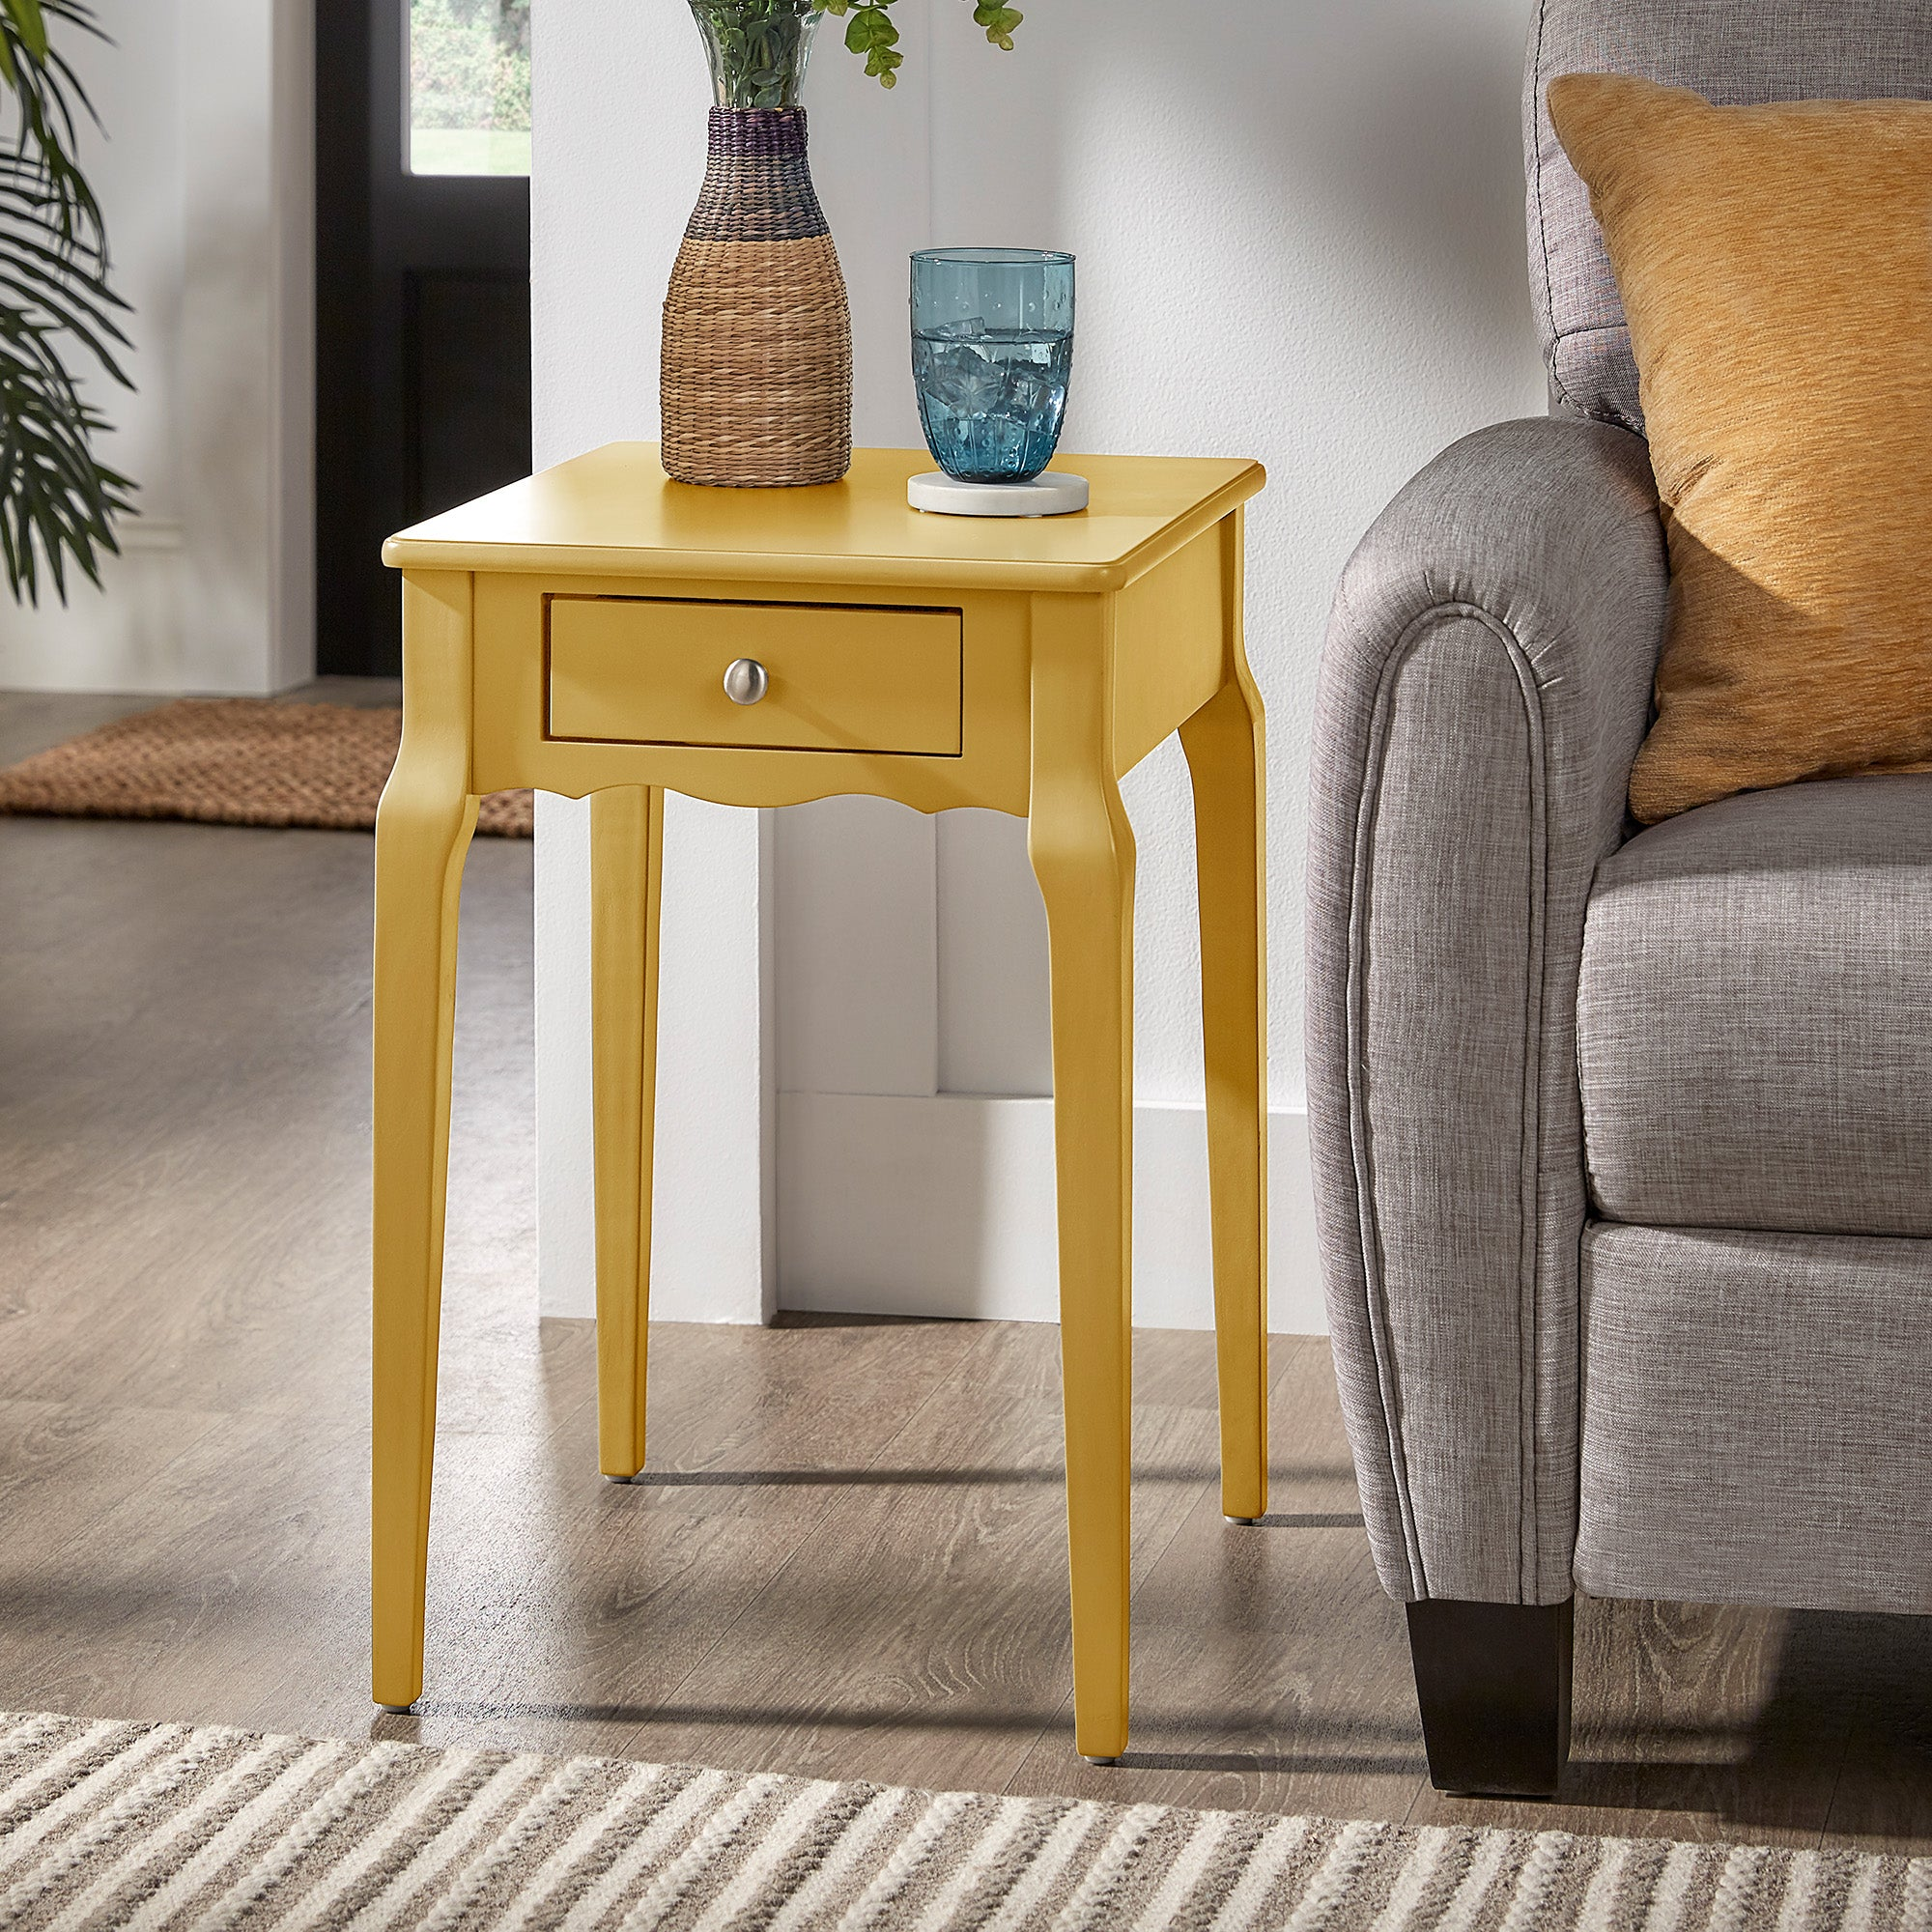 1-Drawer Wood Side Table - Yellow